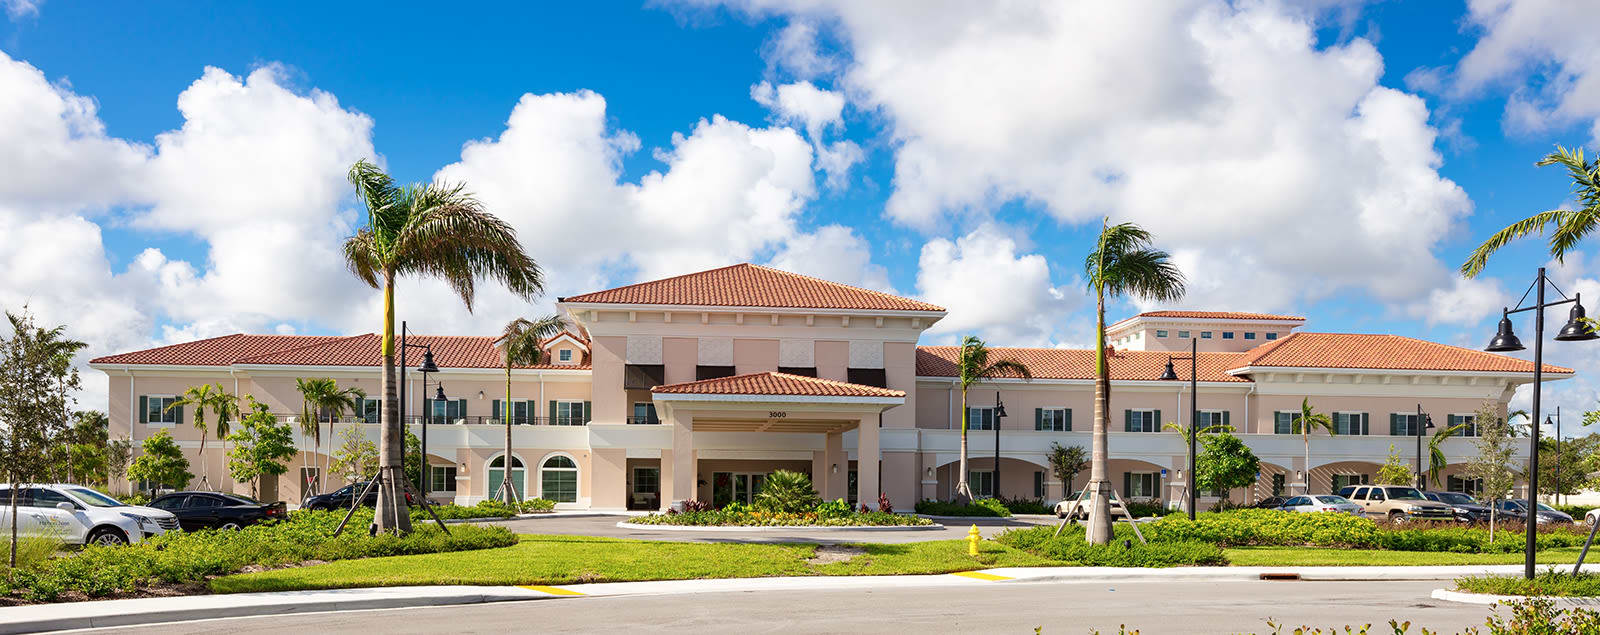 Request a Palm Beach Gardens senior living facility brochure